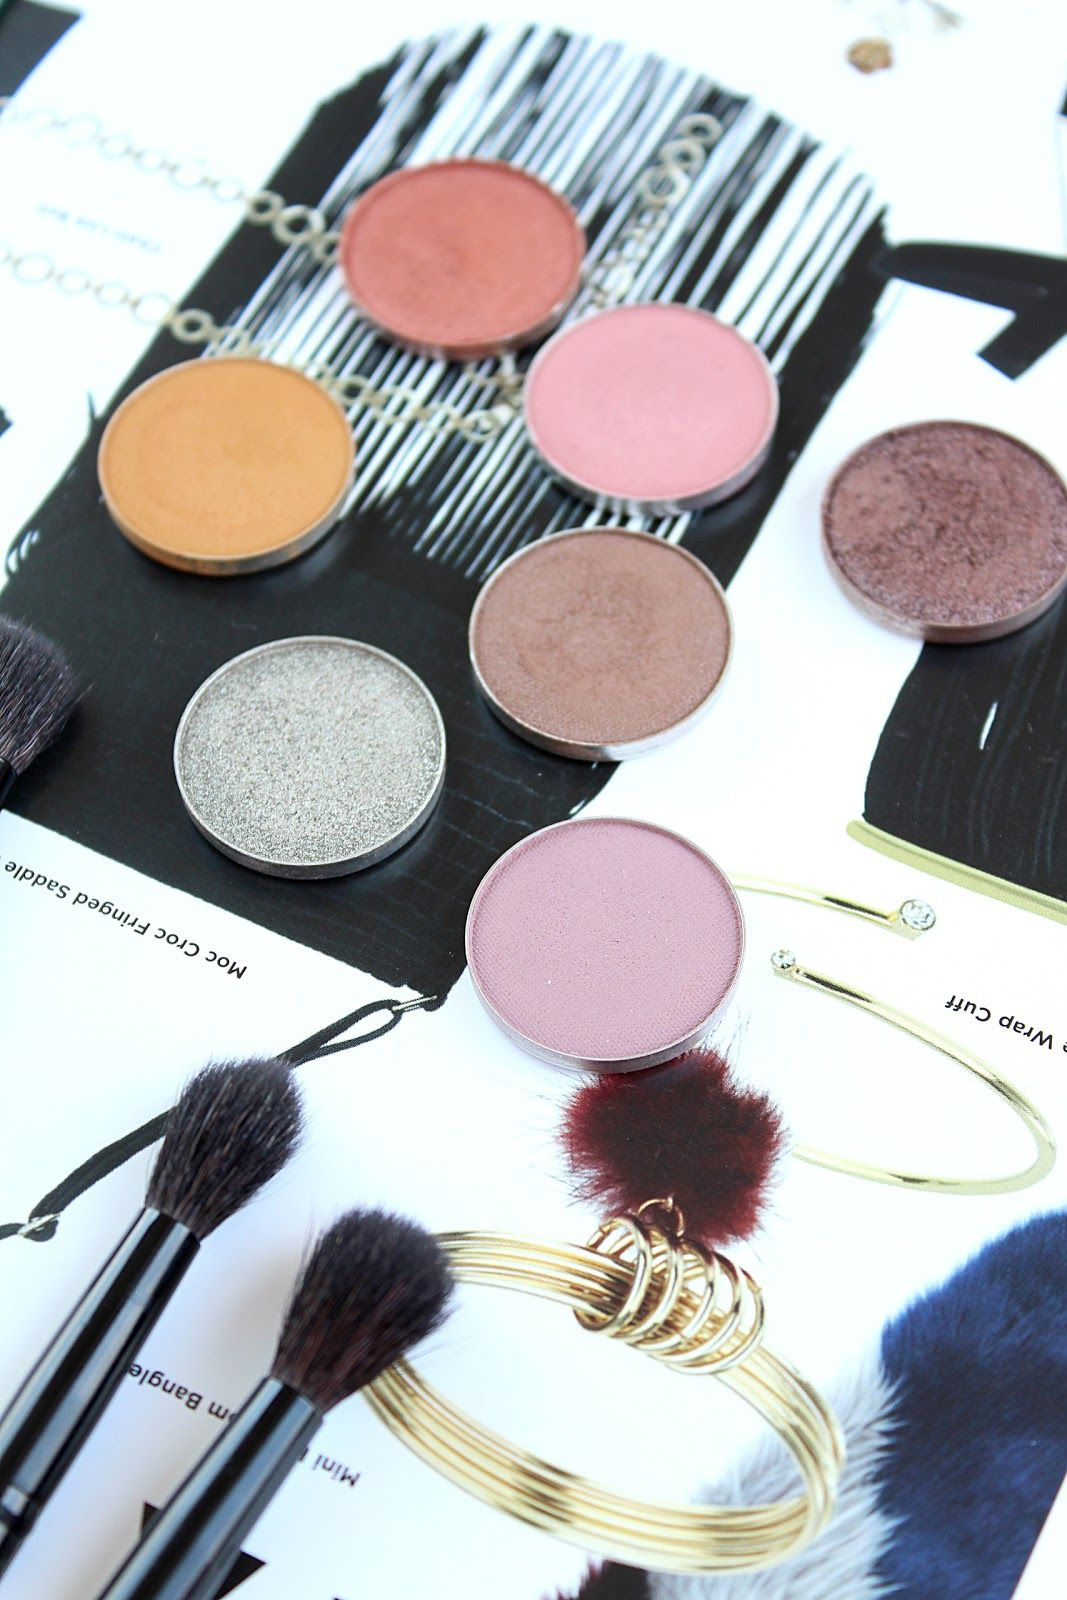 Makeup Geek Eyeshadow Swatches and Review Life in Excess